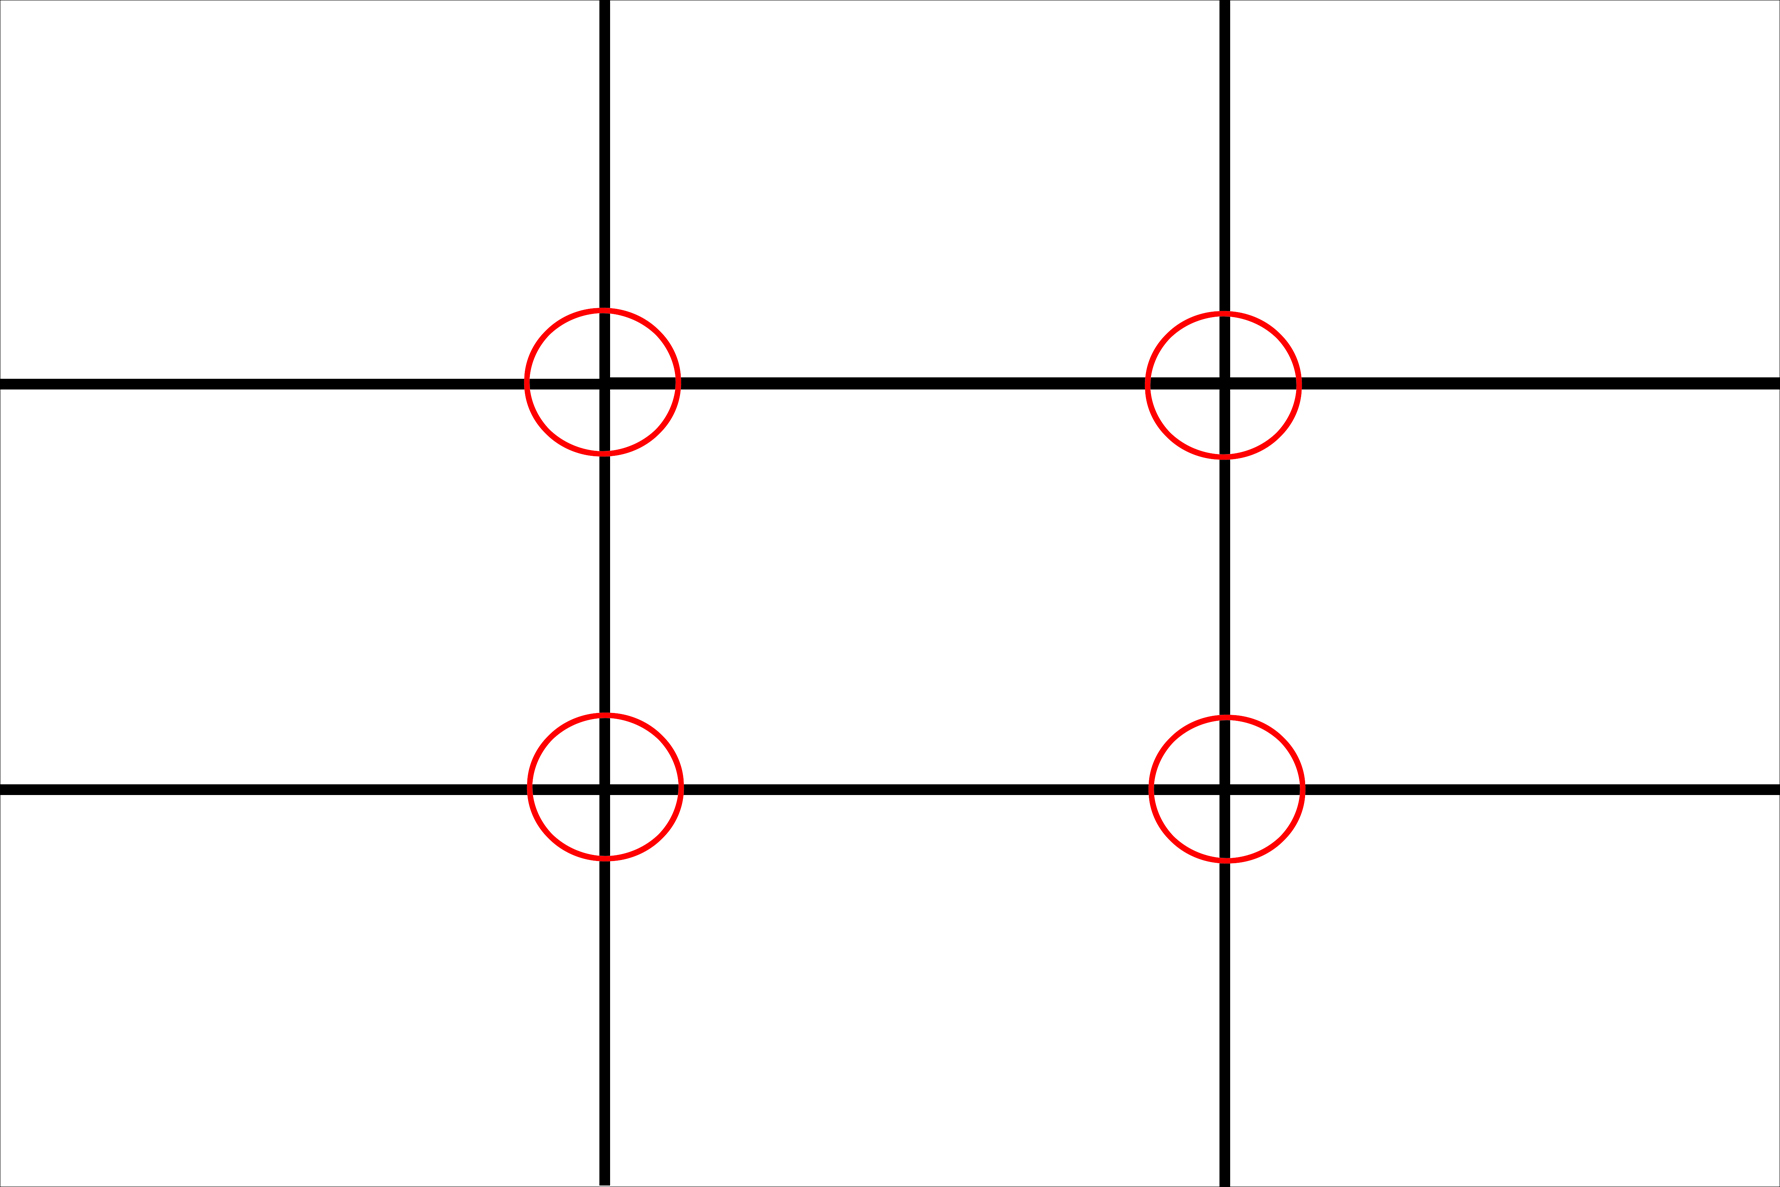 The Rule - Where these segments intersect or cross, indicate where the focal point of the image should be placed.